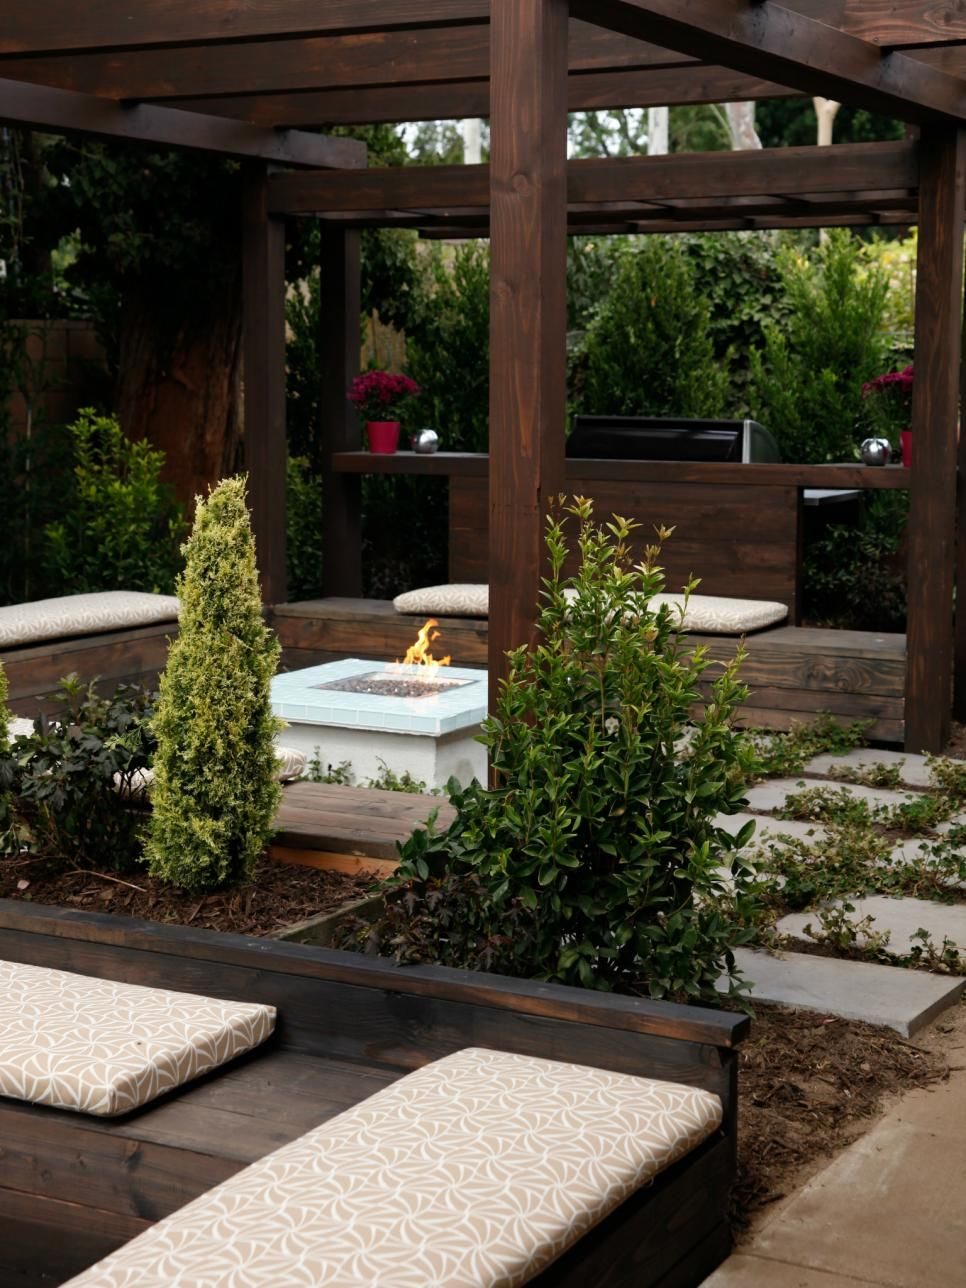 The fireplace and patio place - Pictures Of Beautiful Backyard Decks Patios And Fire Pits Cozy Patiofireplace Ideasthe